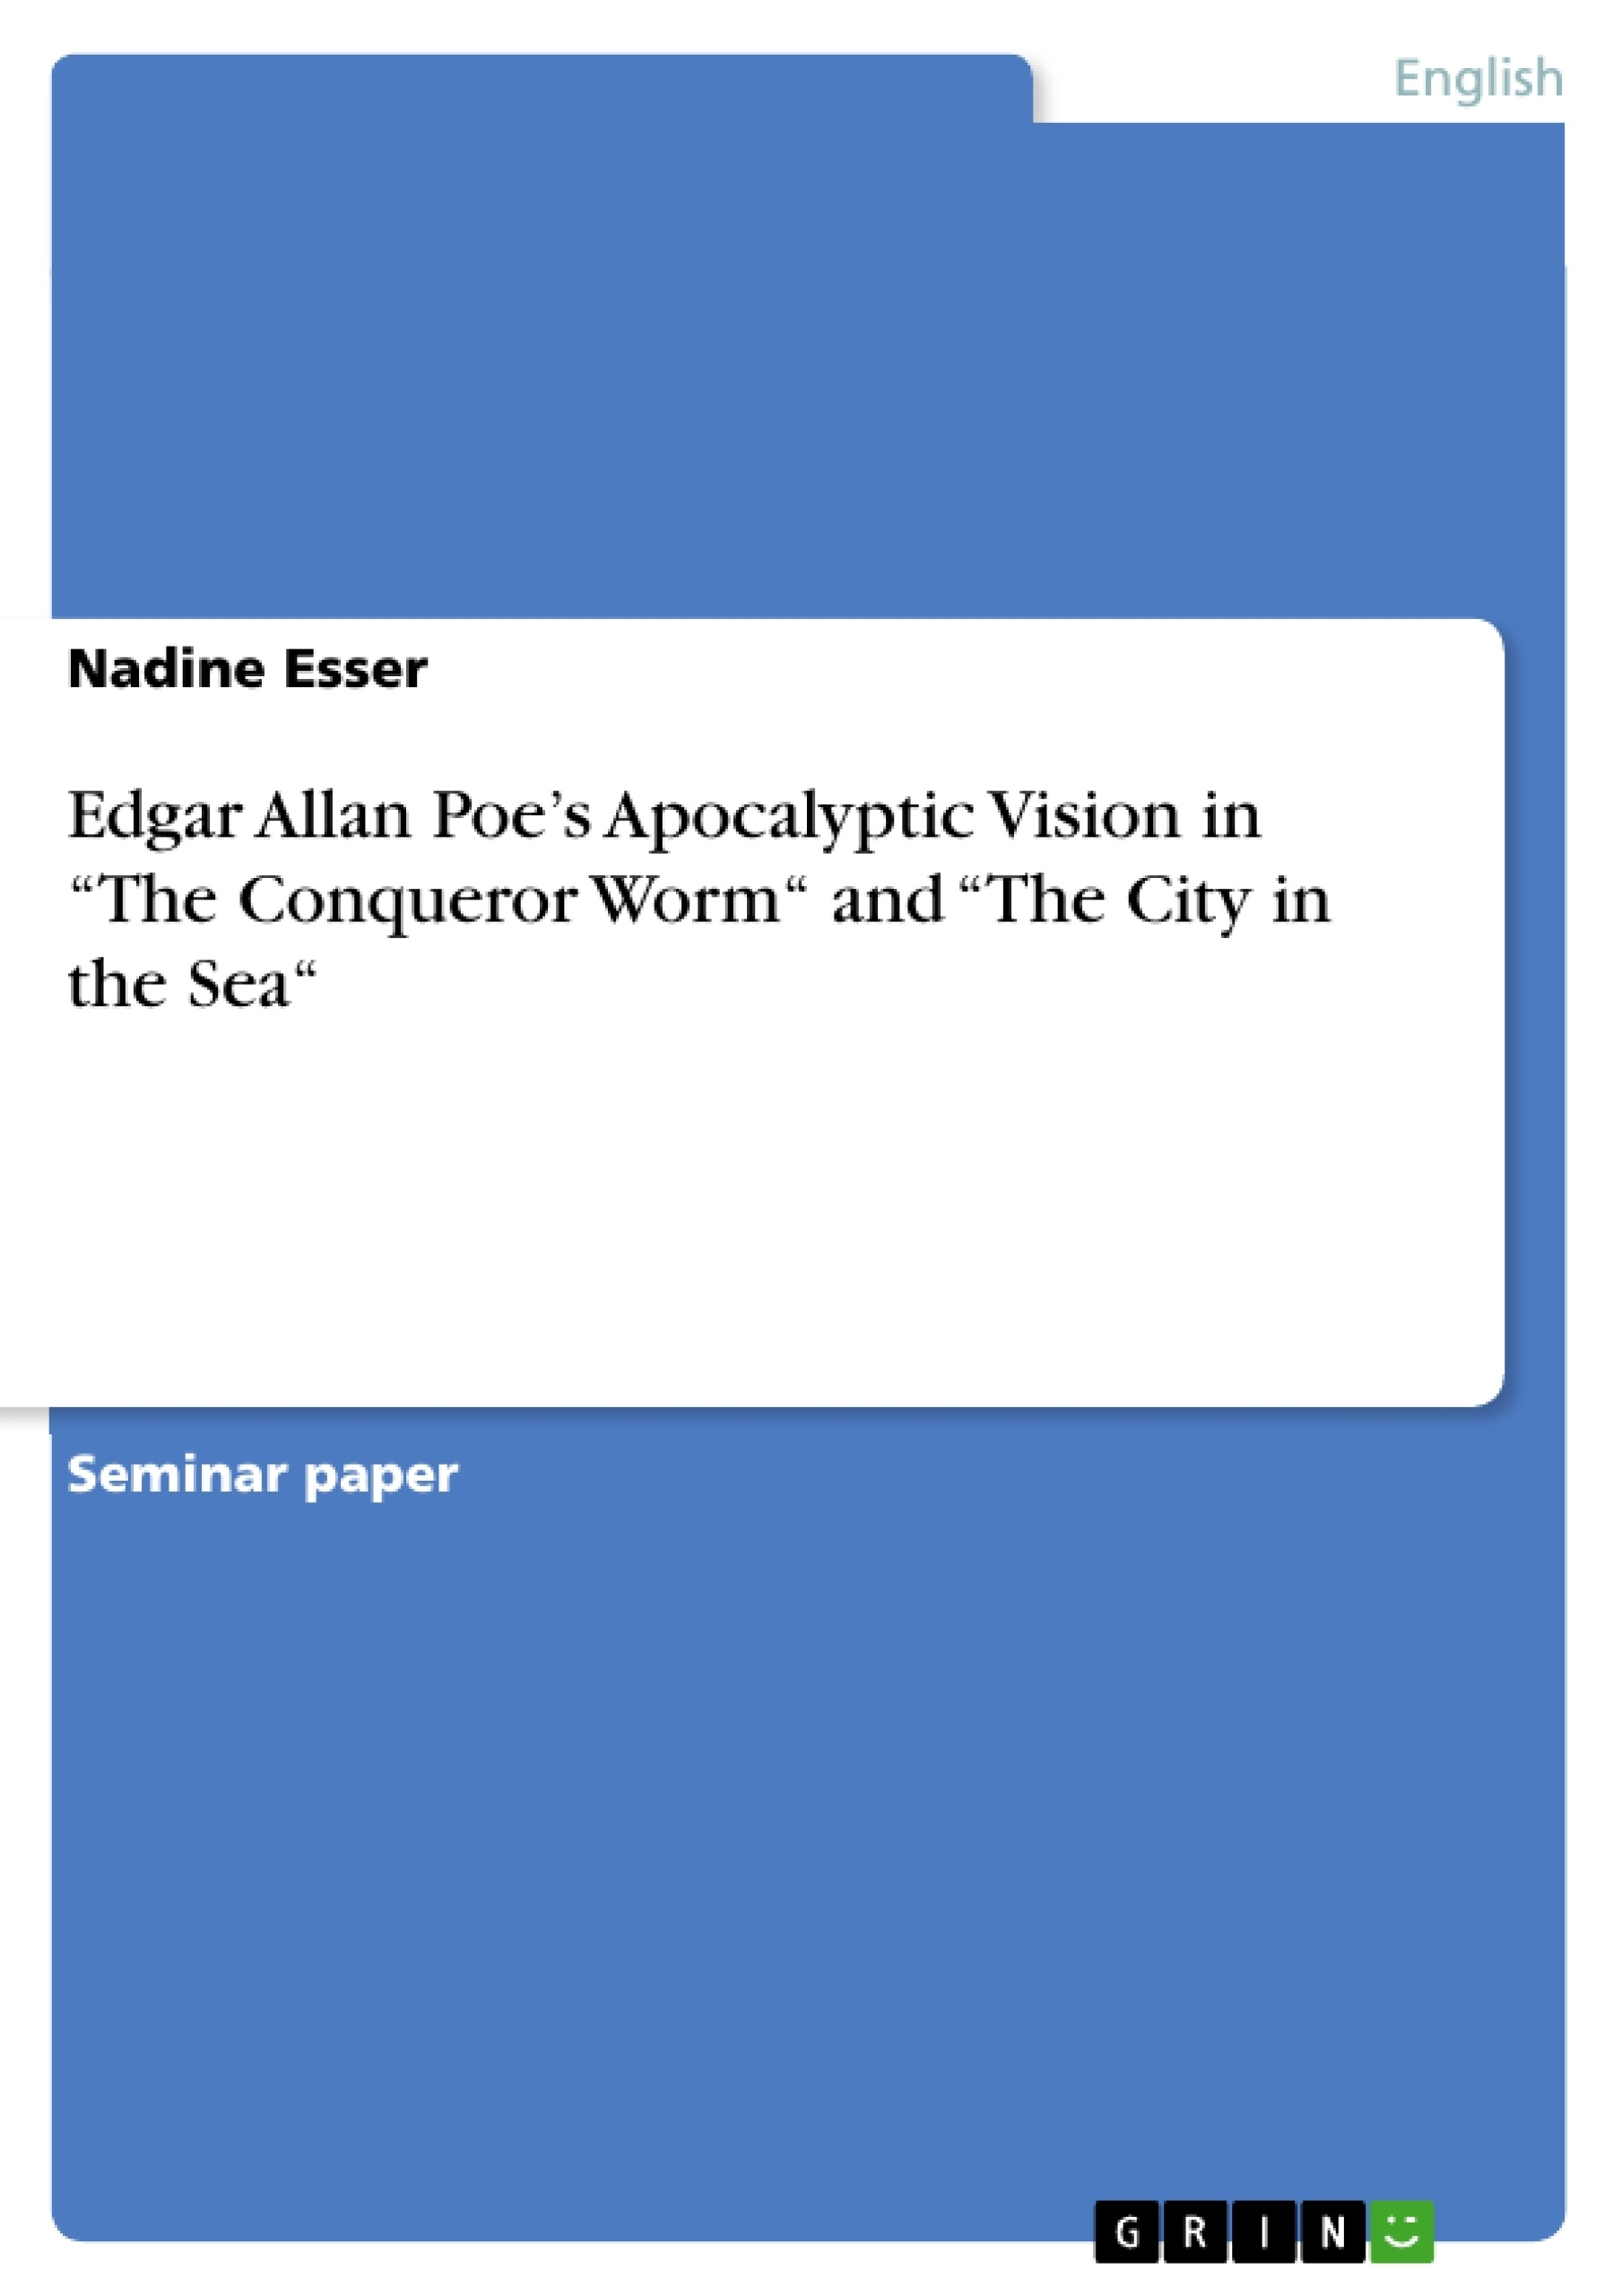 """Title: Edgar Allan Poe's Apocalyptic Vision in """"The Conqueror Worm"""" and """"The City in the Sea"""""""